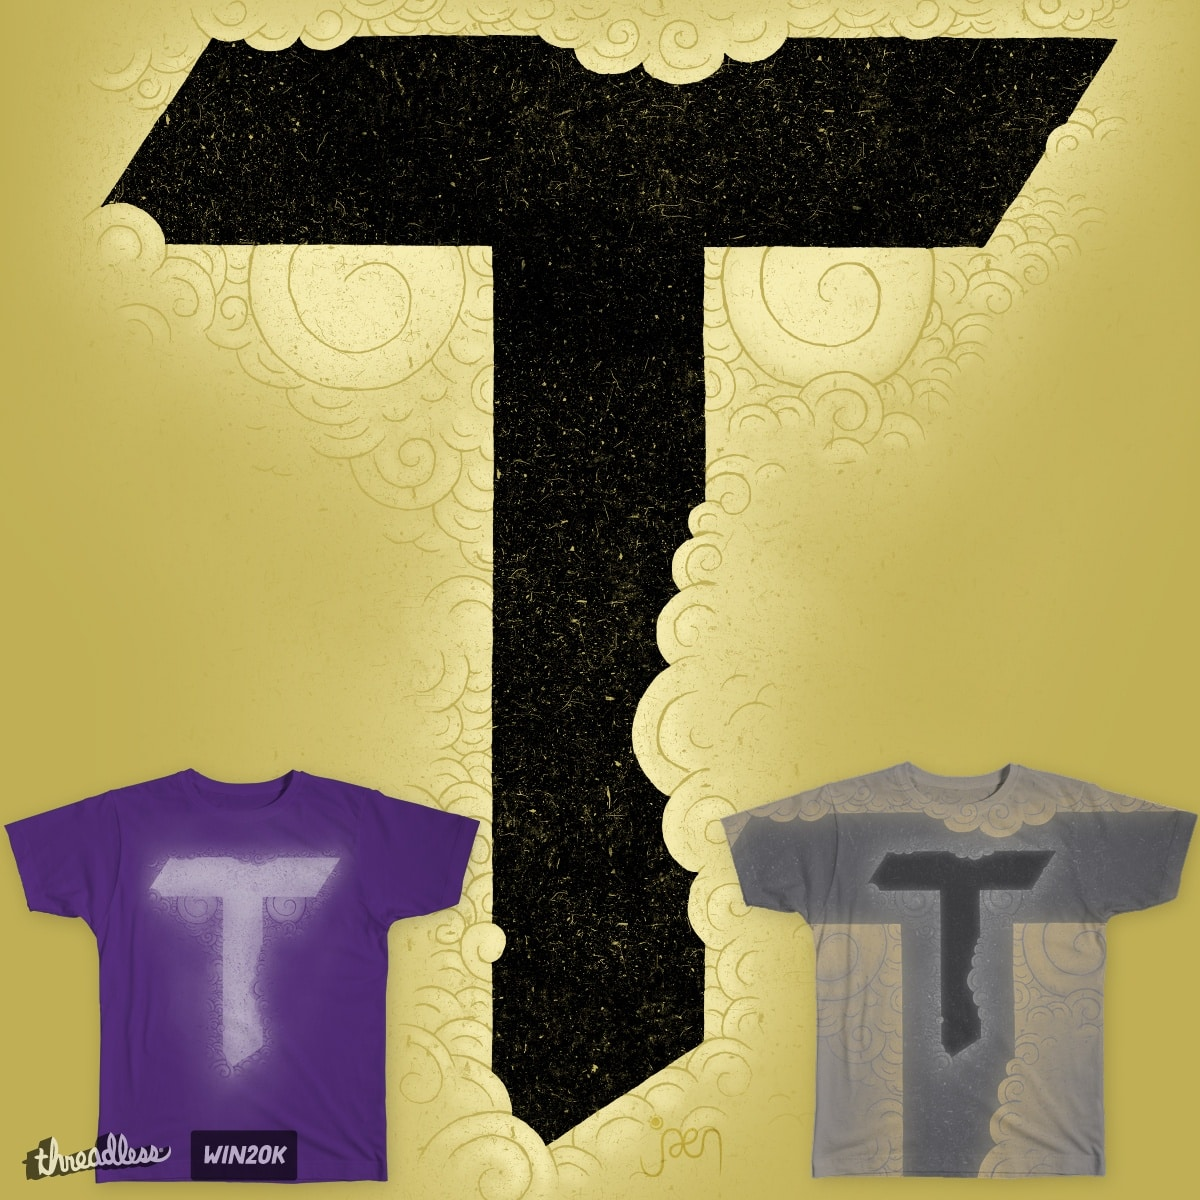 The Glorious T by Jaen_ on Threadless